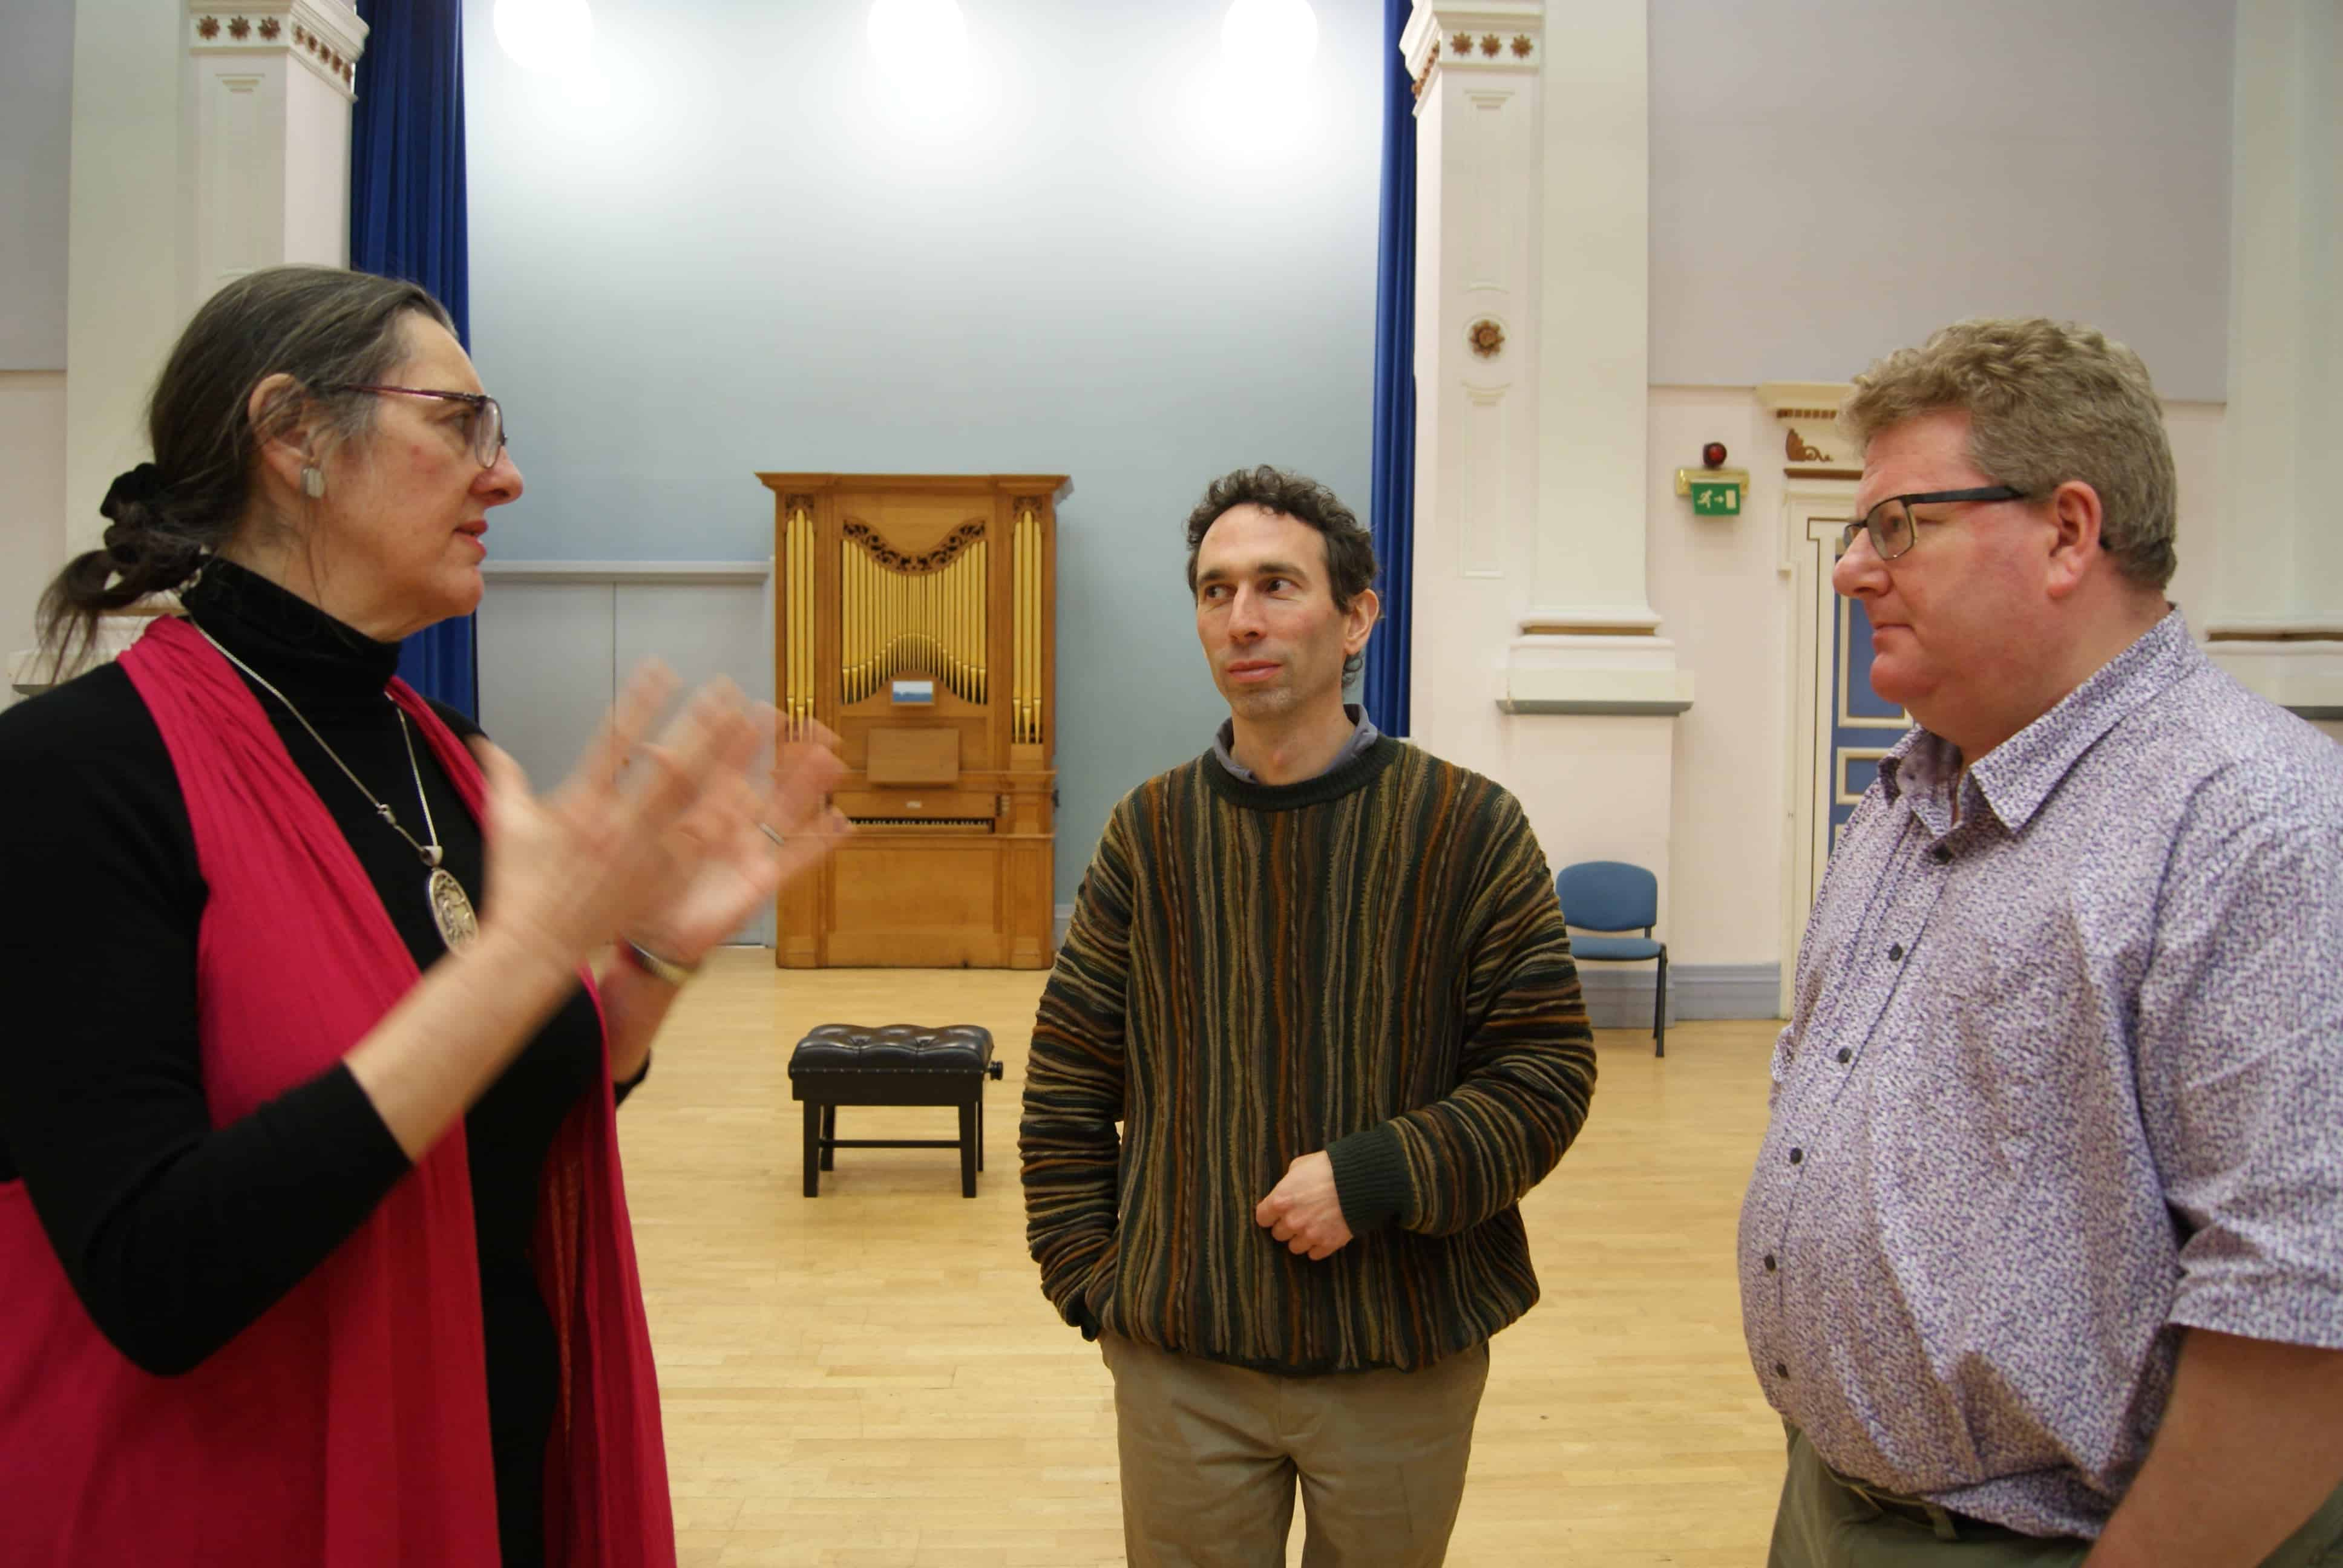 Conductor Bridget Budge, producer Simon Fox and Stephen Muir in conversation